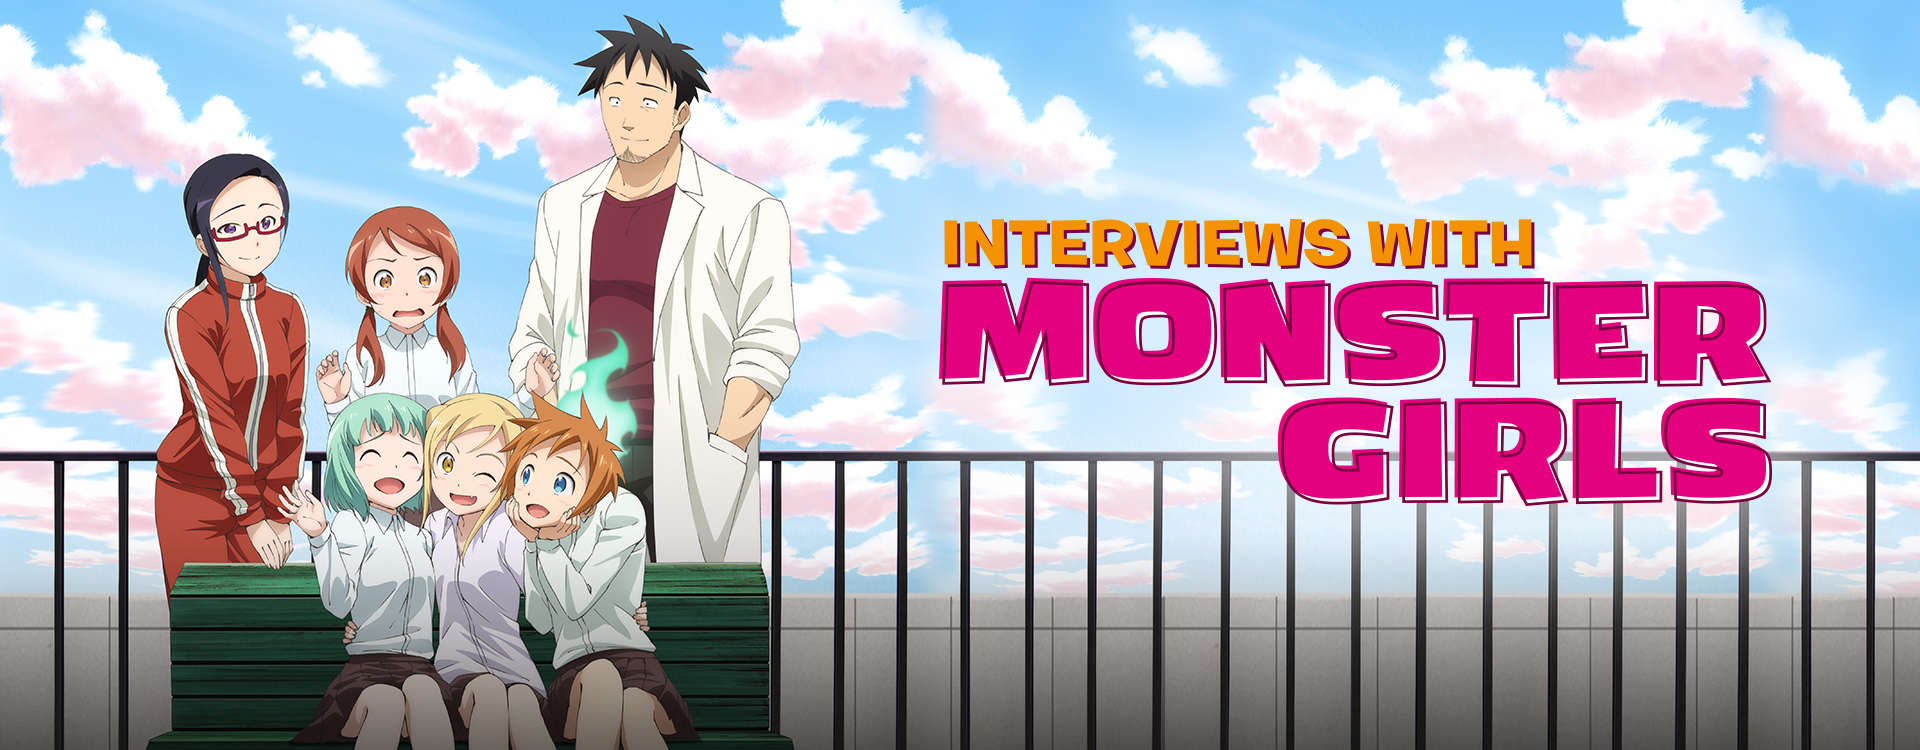 stream watch interviews monster girls episodes online sub interviews monster girls